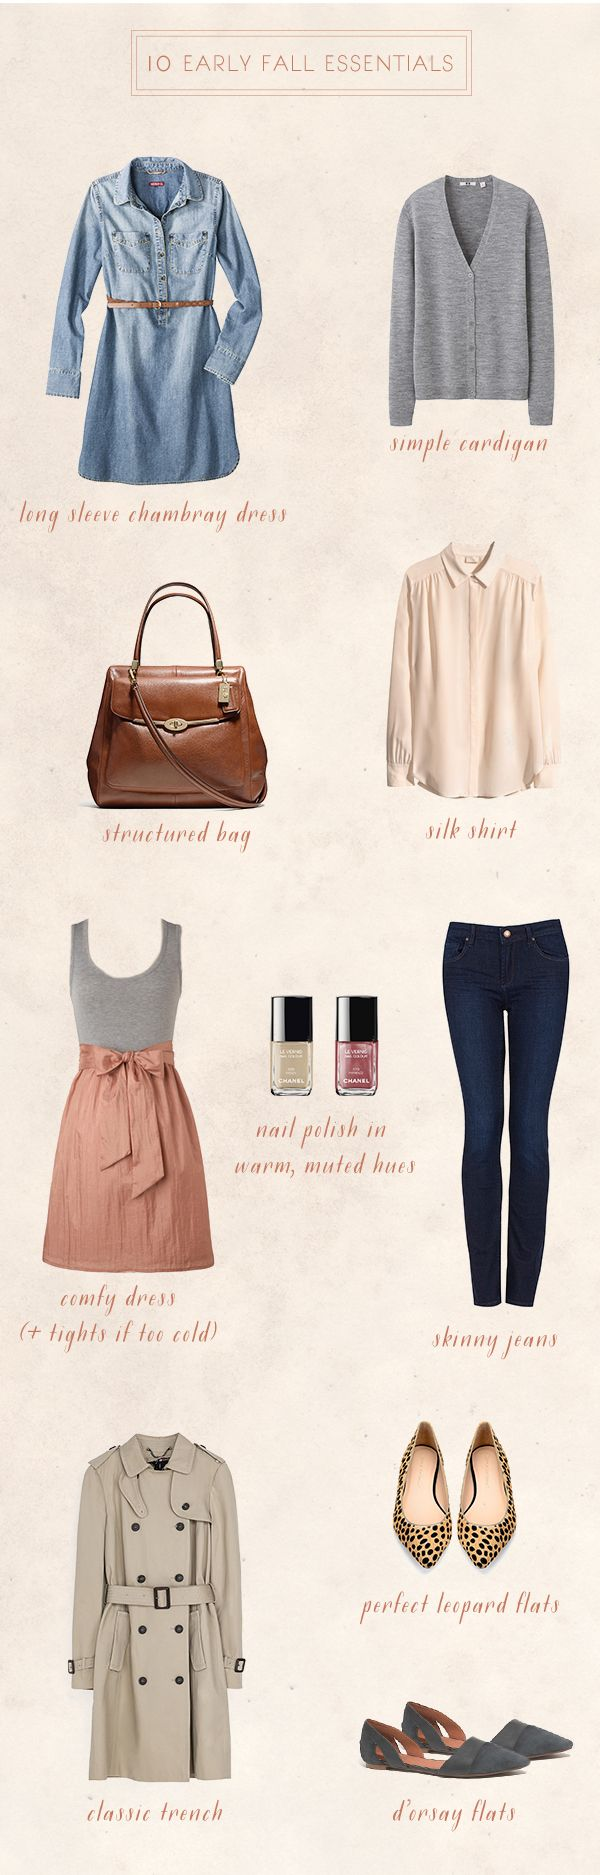 10 Early Fall Essentials - I love this! And I have several of these in my capsule wardrobe.